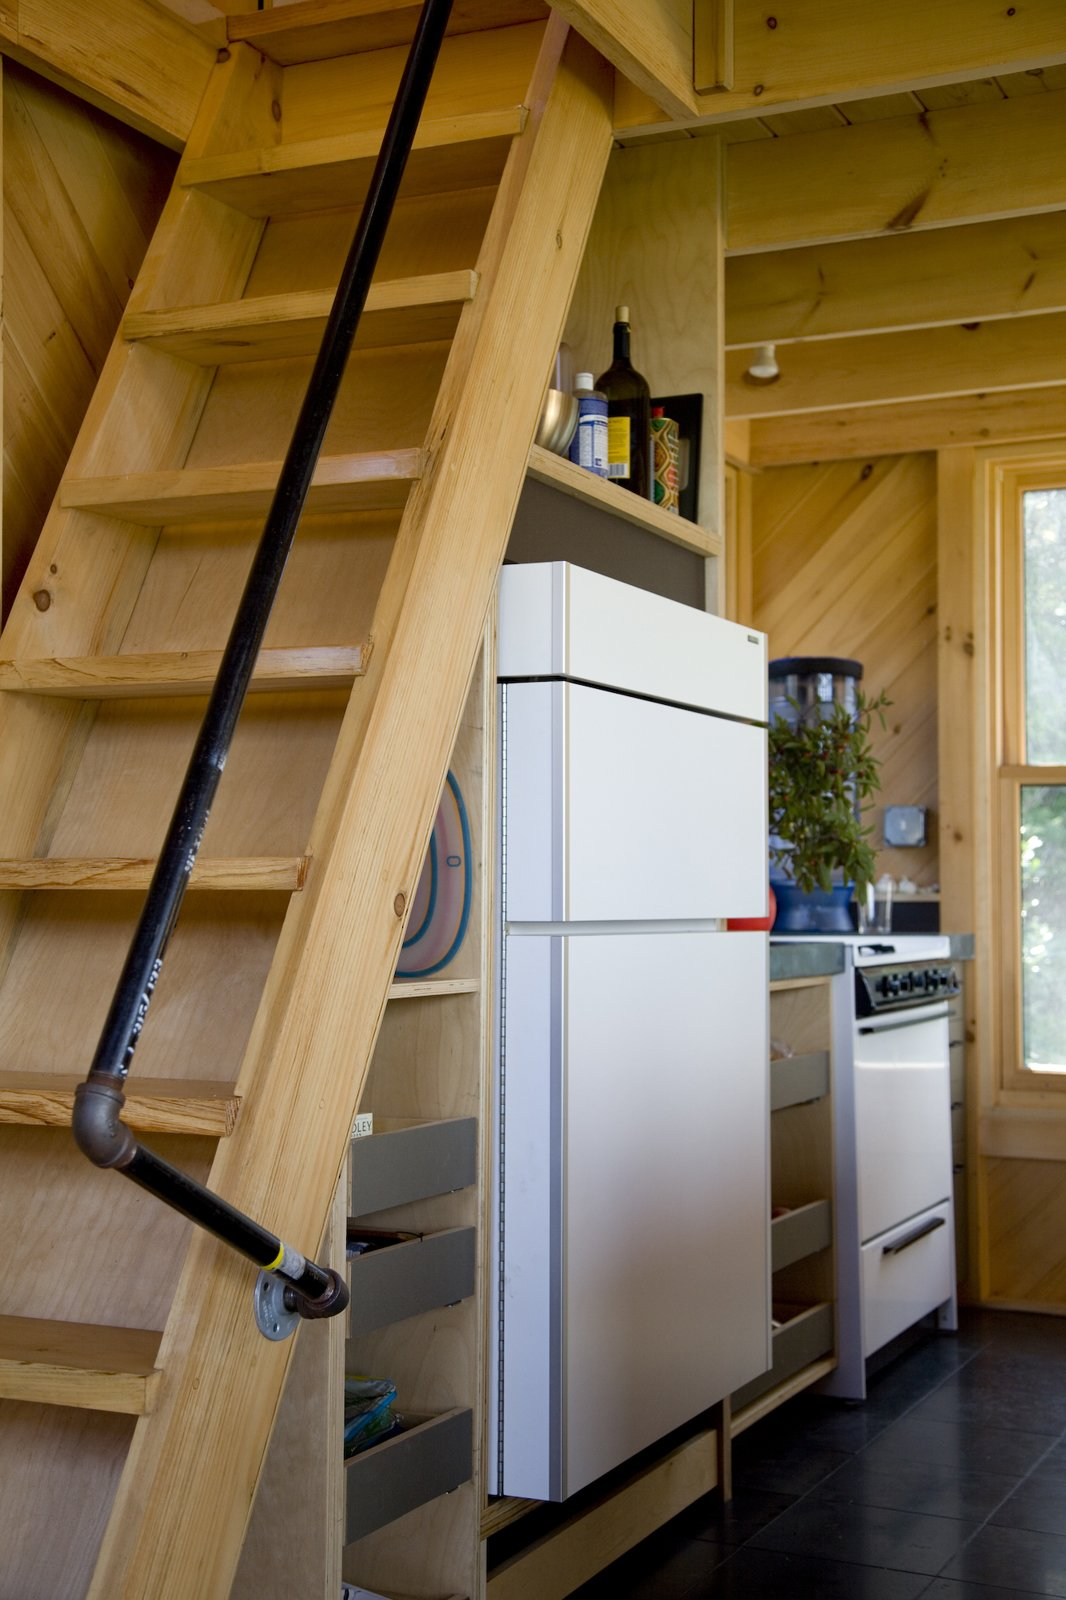 Howell was creative in his space-saving techniques as well as for practical matters. The handrail for the stairs to the loft was pieced together with lengths of PVC pipe and plumbing hardware.  Photo 21 of 21 in A Tiny Cabin is This Writer's Off the Grid Getaway